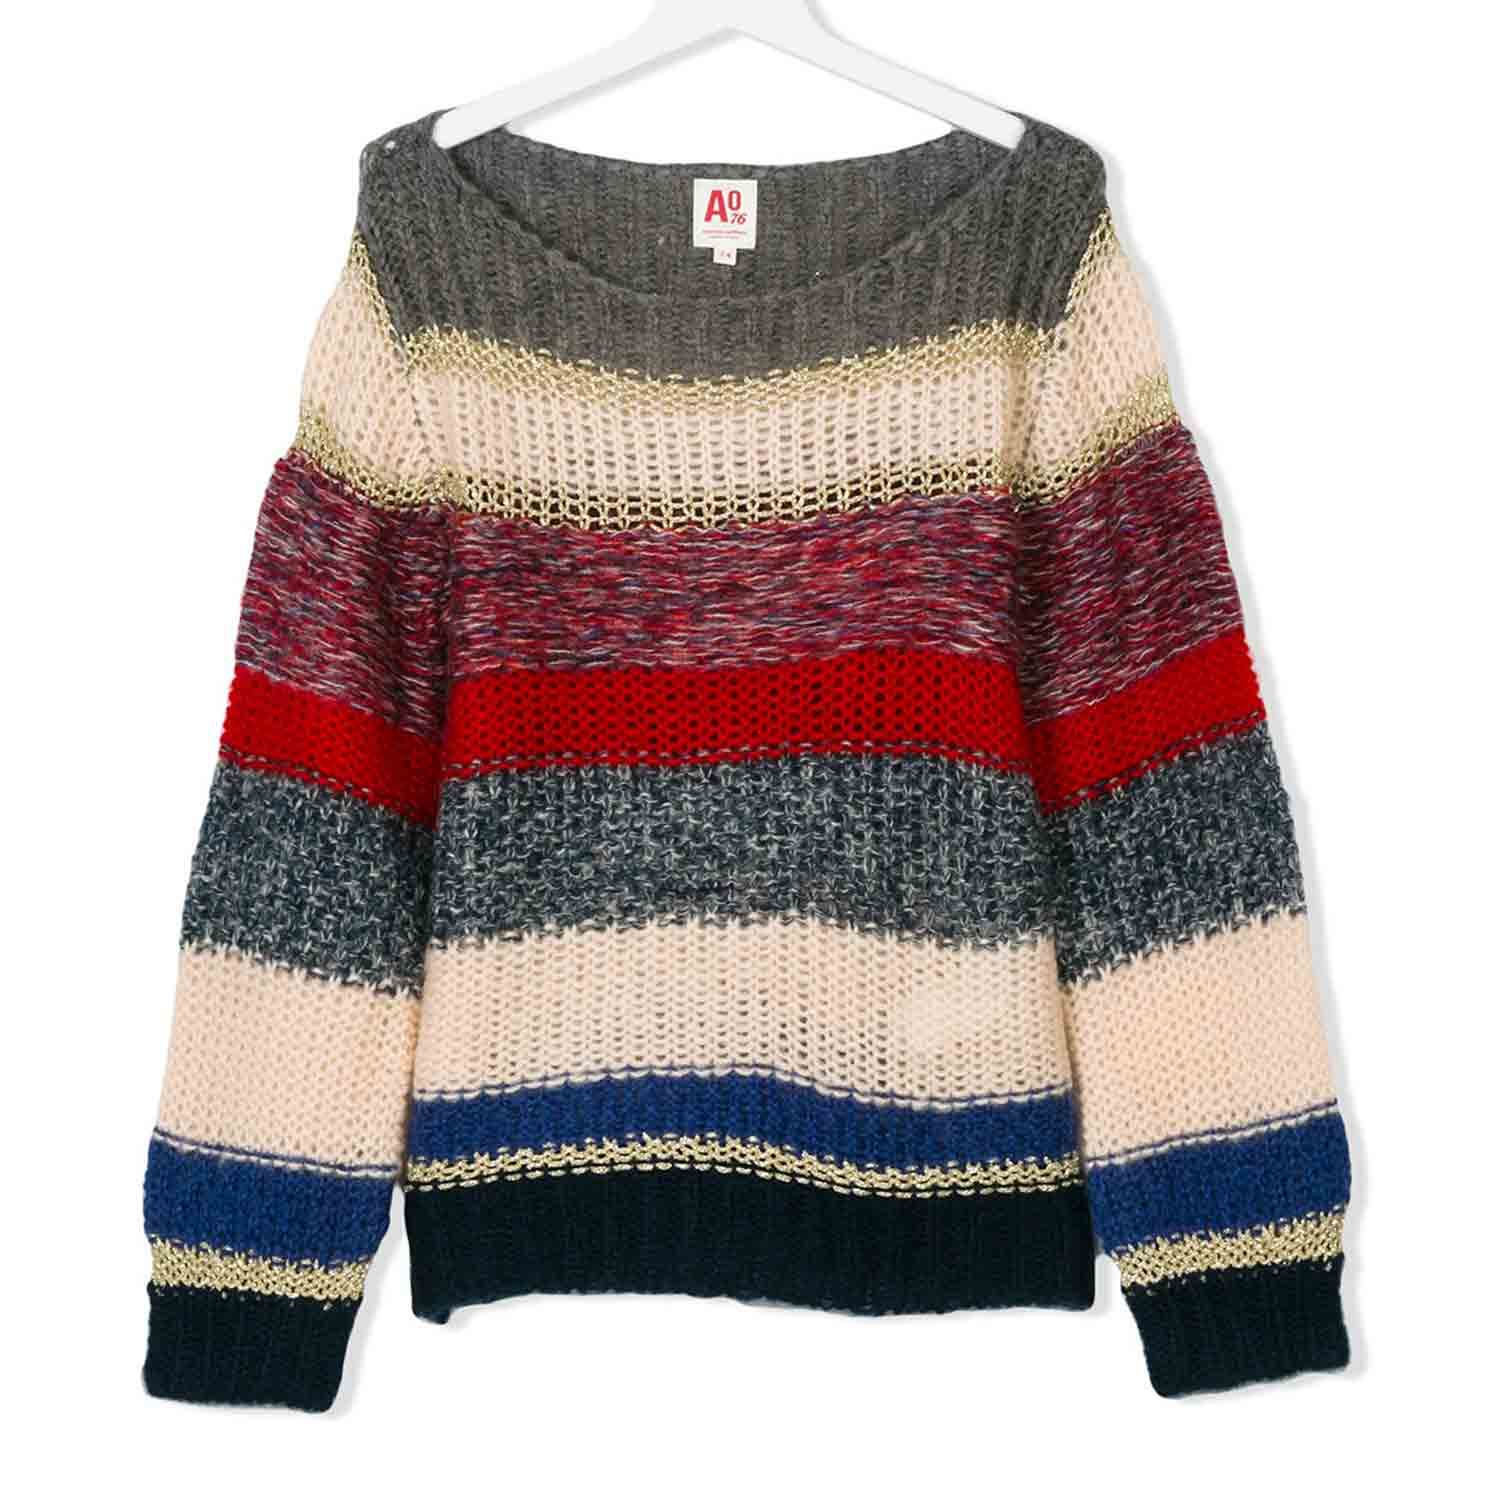 American Outfitters Online Shop Multicolor Maglione vYqv6